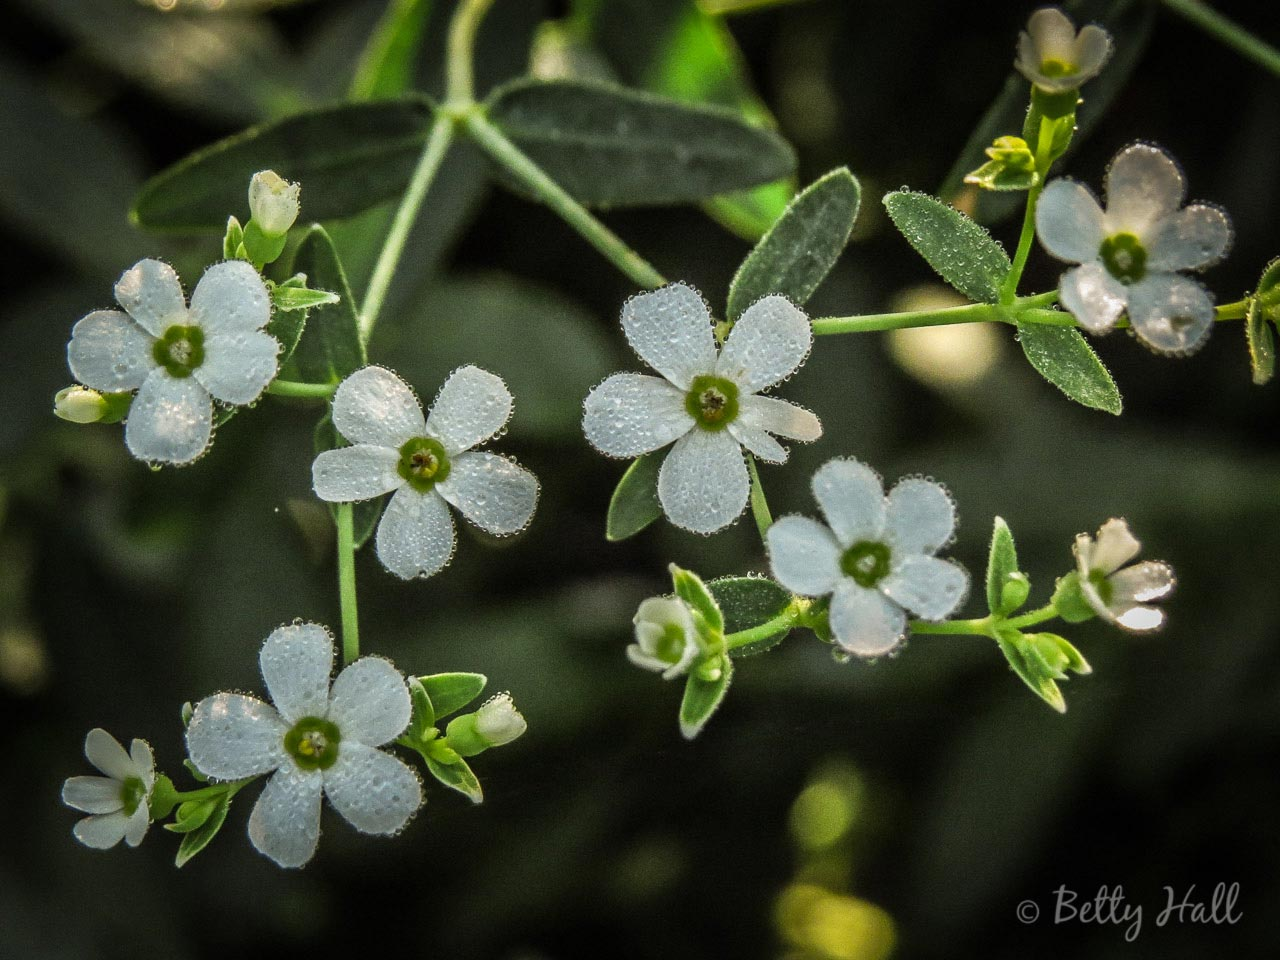 Flowering Spurge with dew